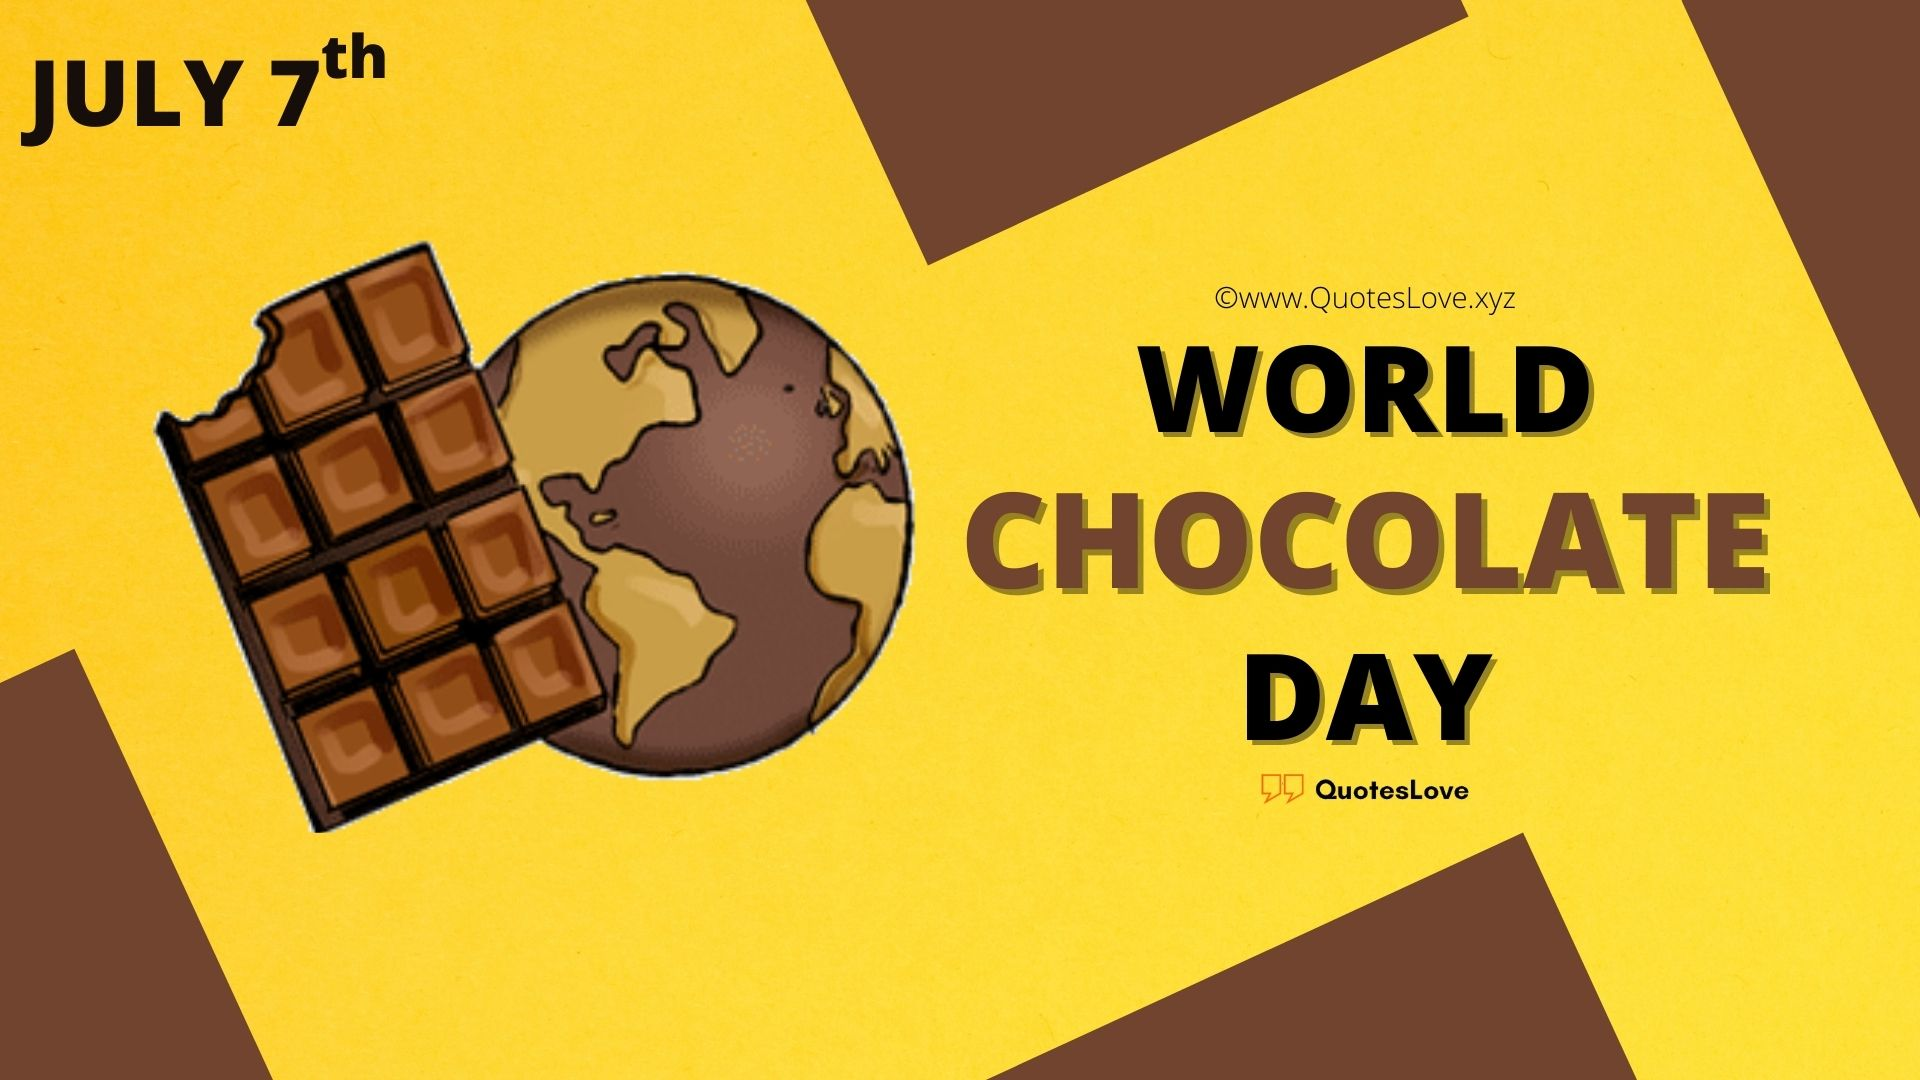 World Chocolate Day Quotes, Wishes, Greetings, Theme, Images, Poster, Pictures, Photos, Wallpaper